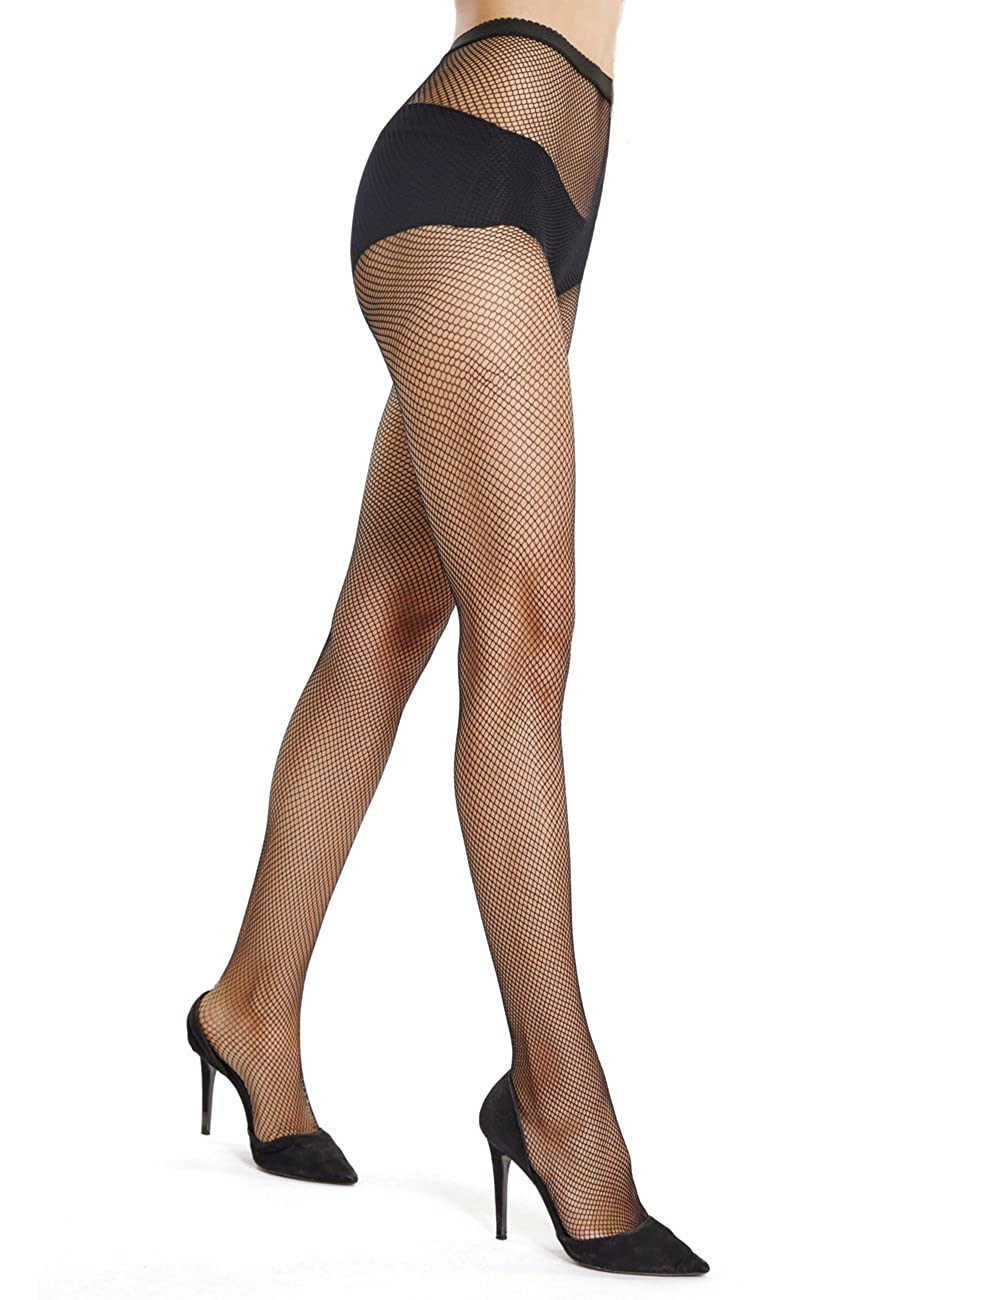 akiido High Waist Tights Fishnet Stockings Thigh High Stockings Pantyhose Black-Large Grid